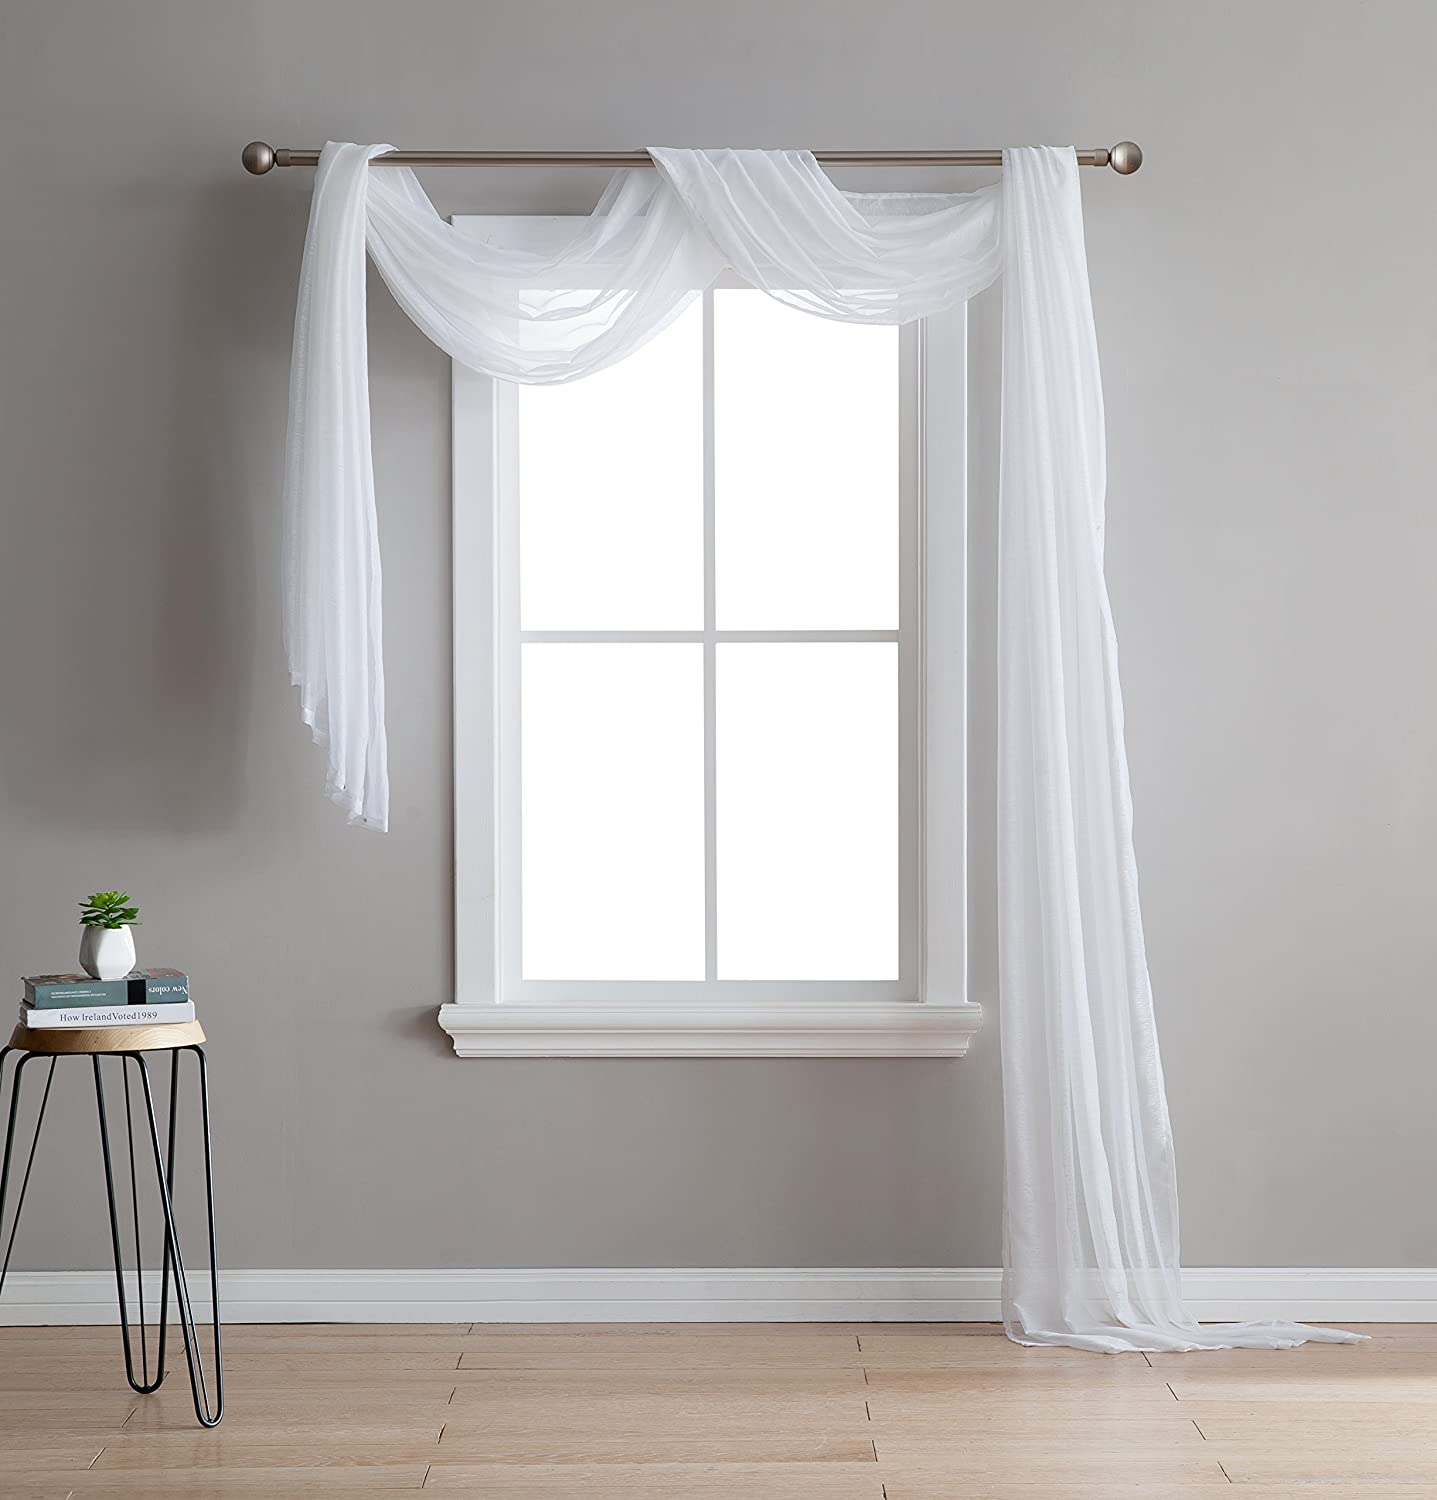 Karina - Semi-Sheer Window Scarf (54 x 216) - Elegant Home Decor Window Treatments